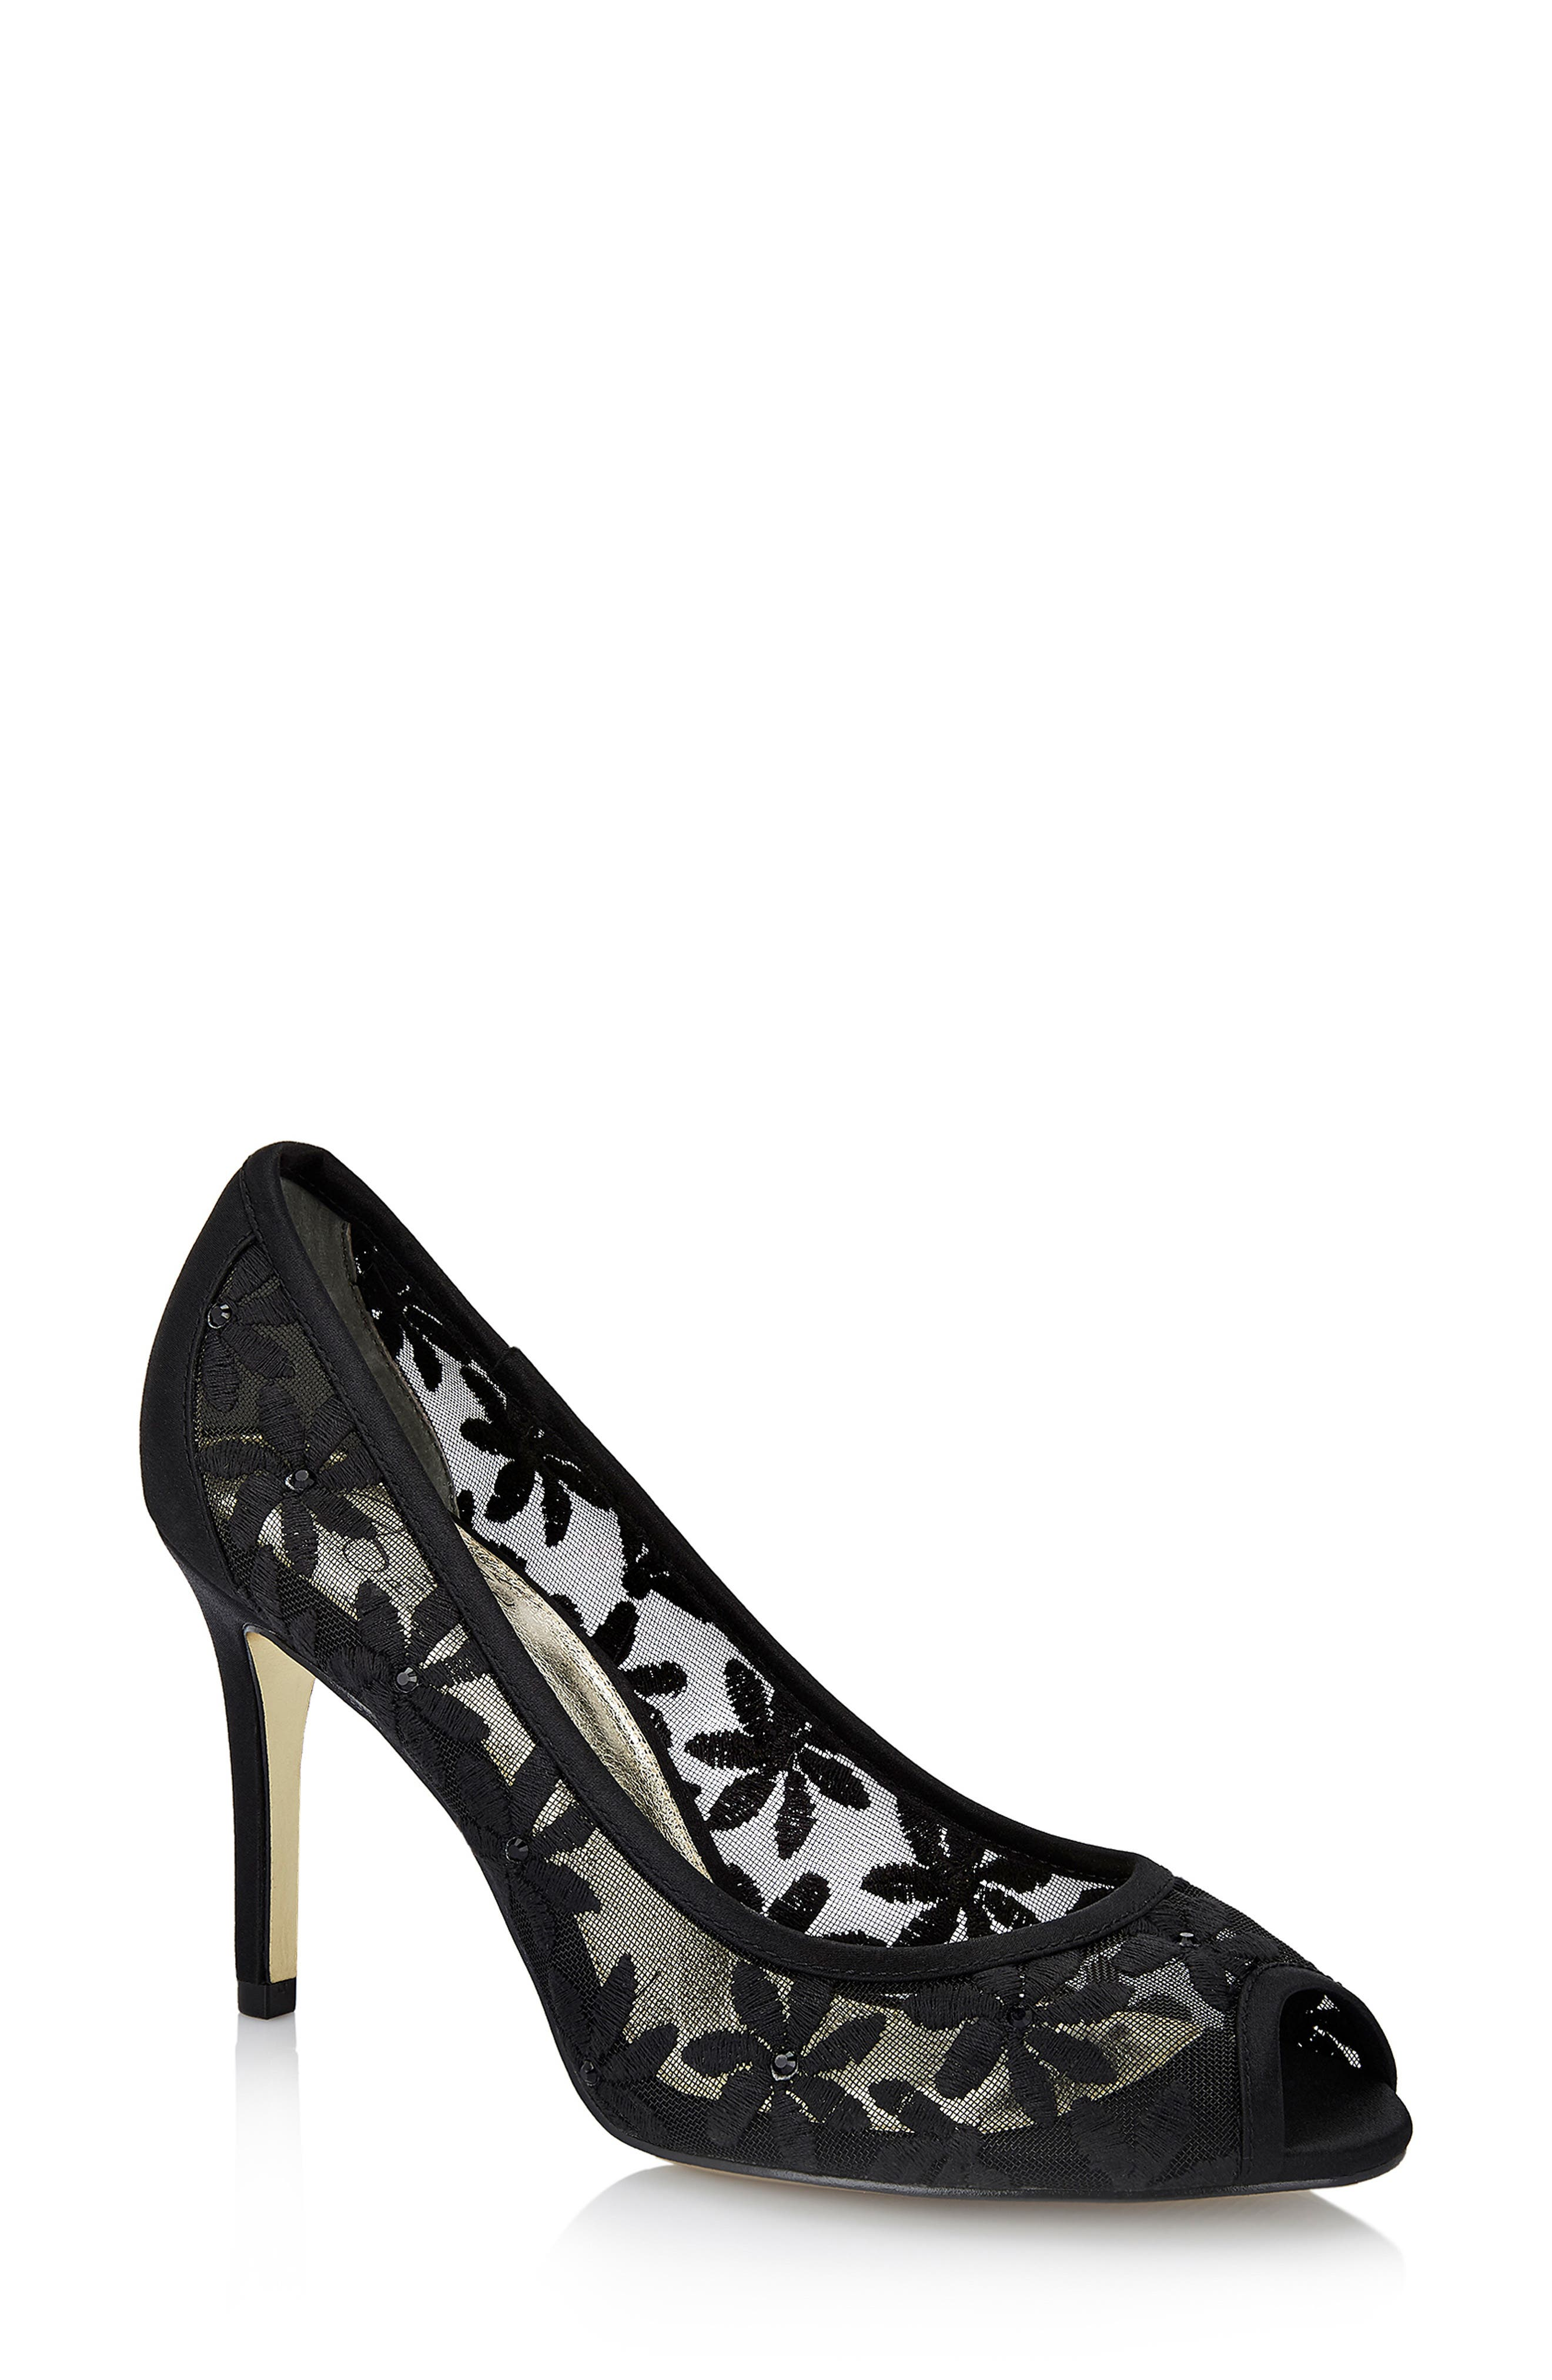 Adrianna Papell Frances Peep Toe Pump, Black